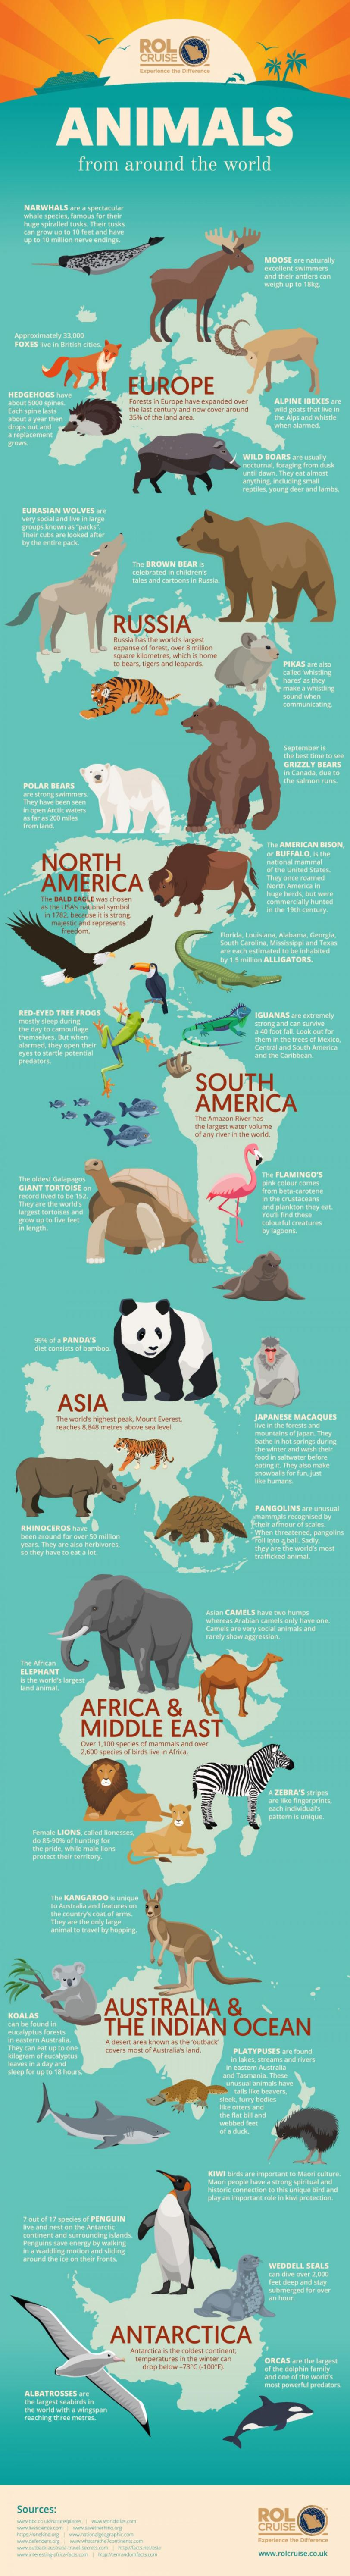 Animals From Around the World by ROL Cruise